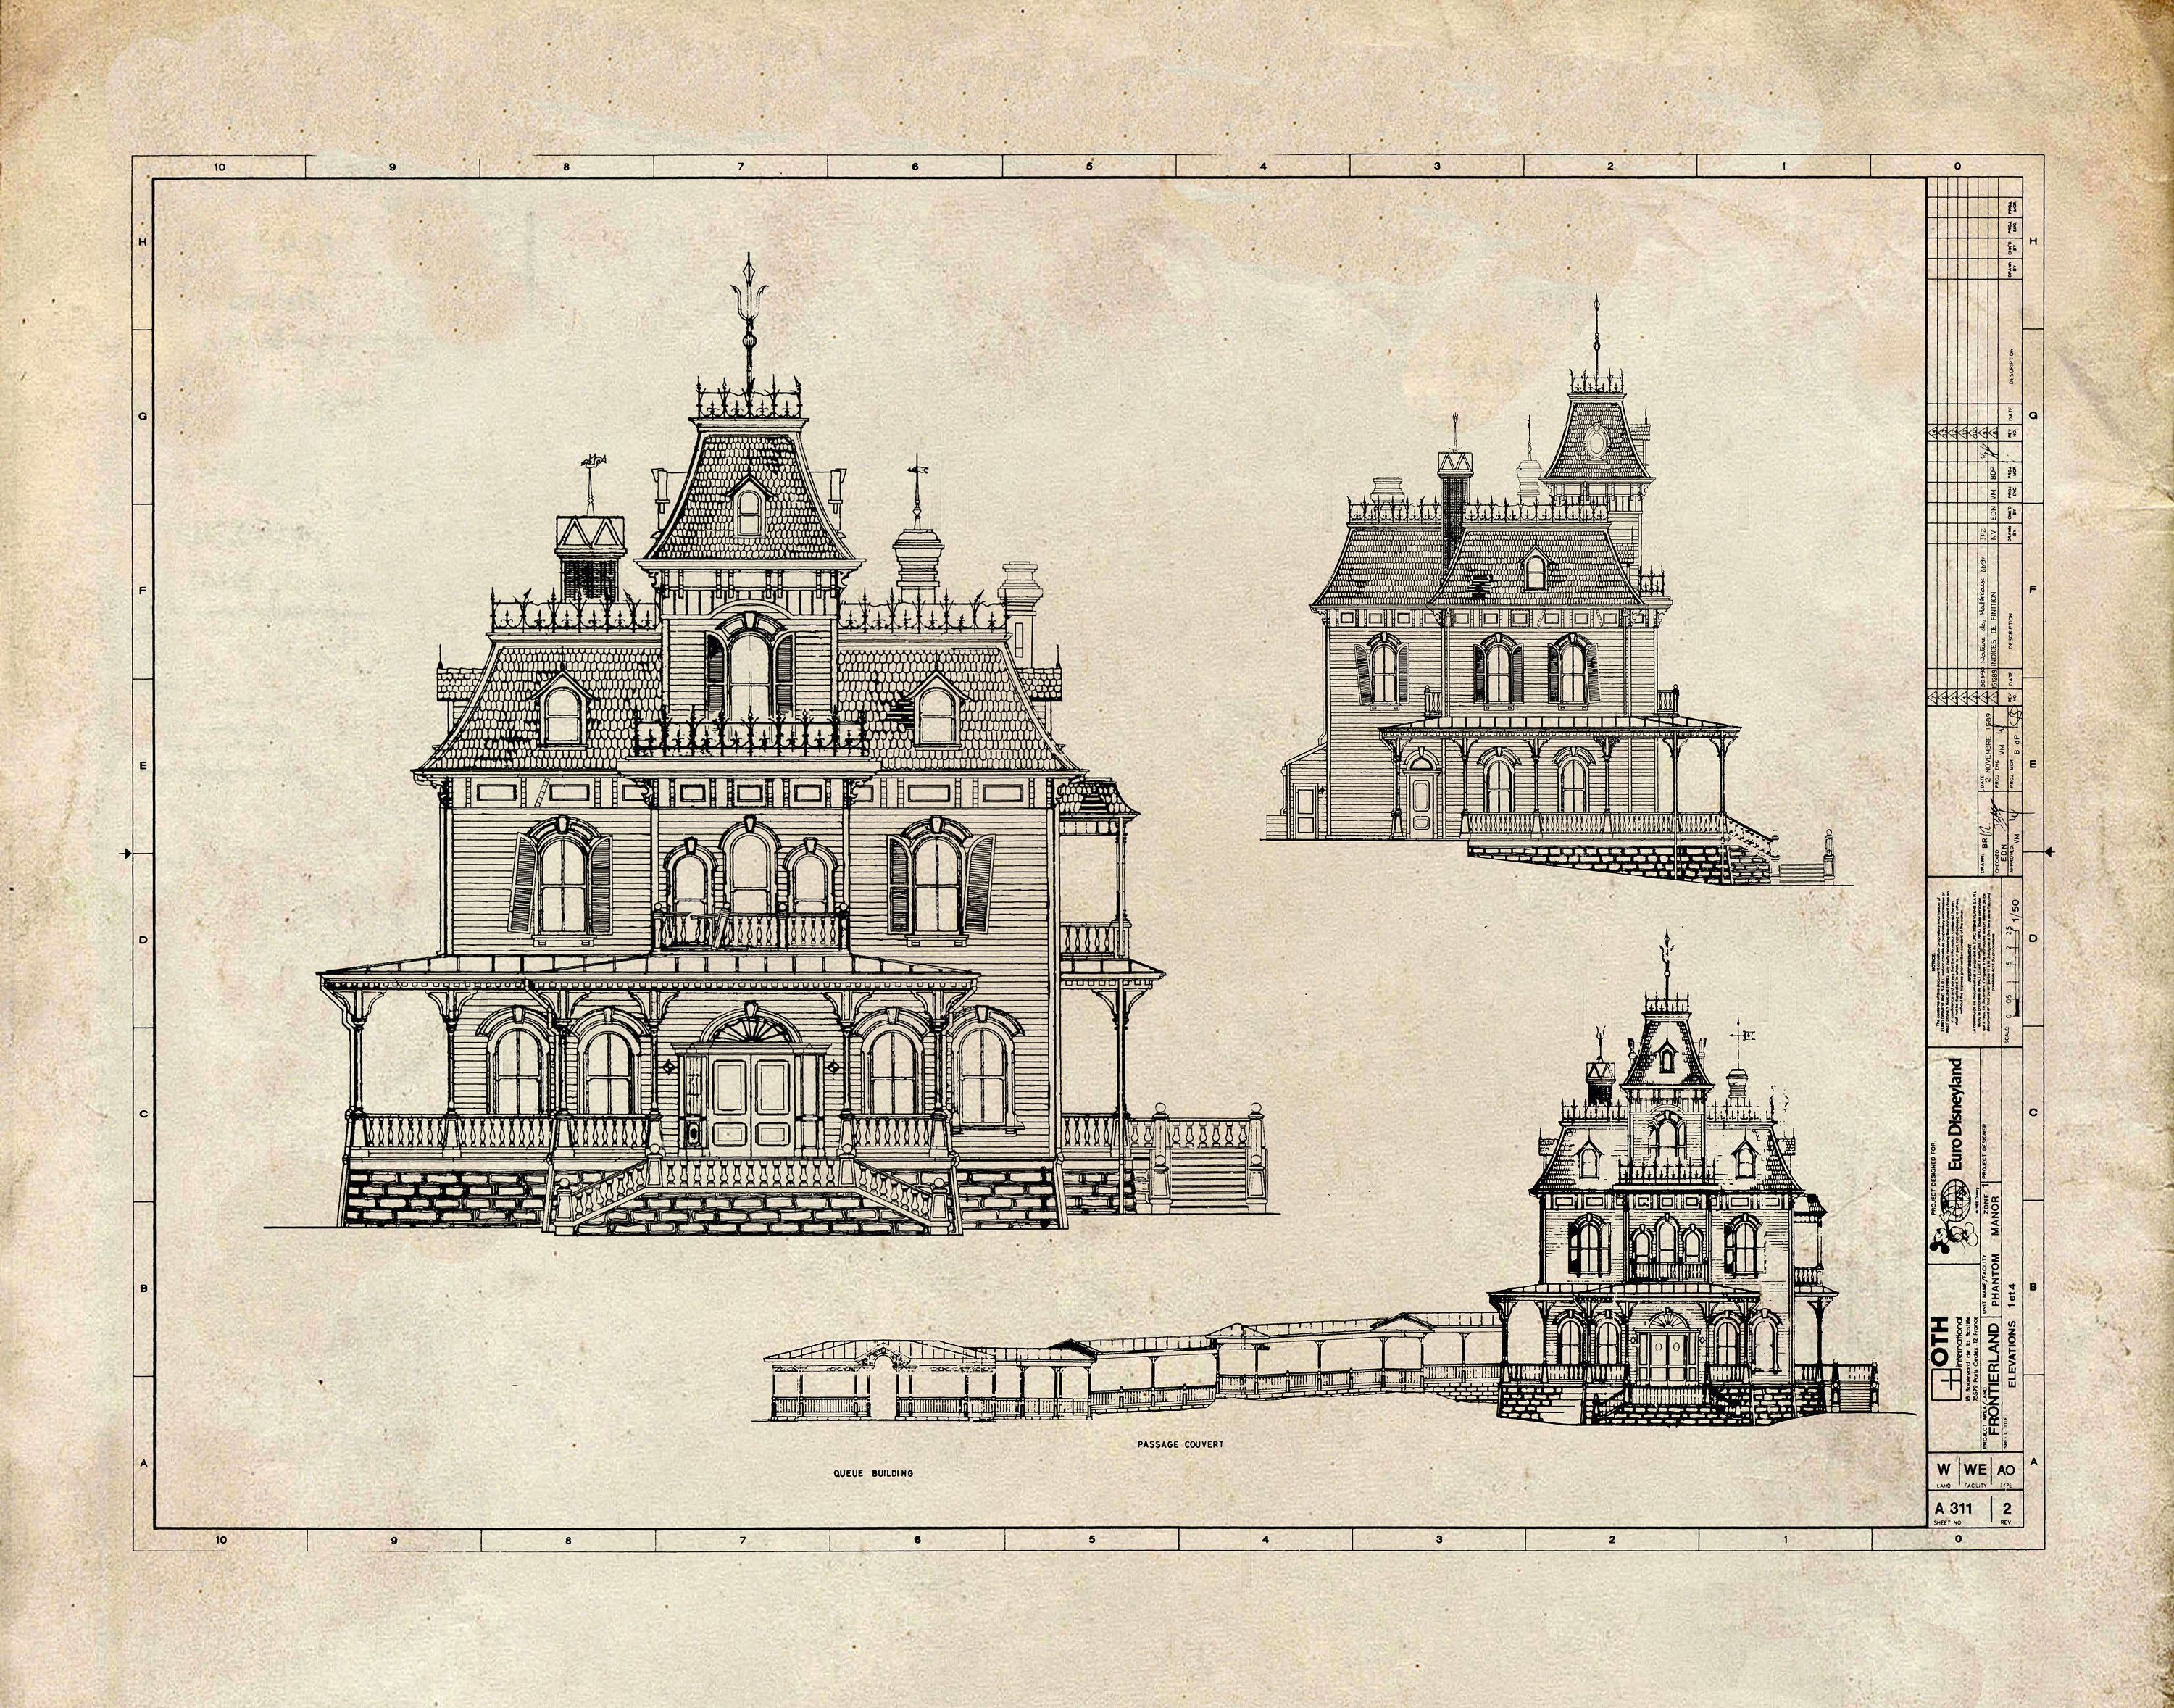 Disneyland Paris Phantom Manor Haunted Mansion Blueprint Disney Disneyland Vintage Black Ink Grunge Print Poster